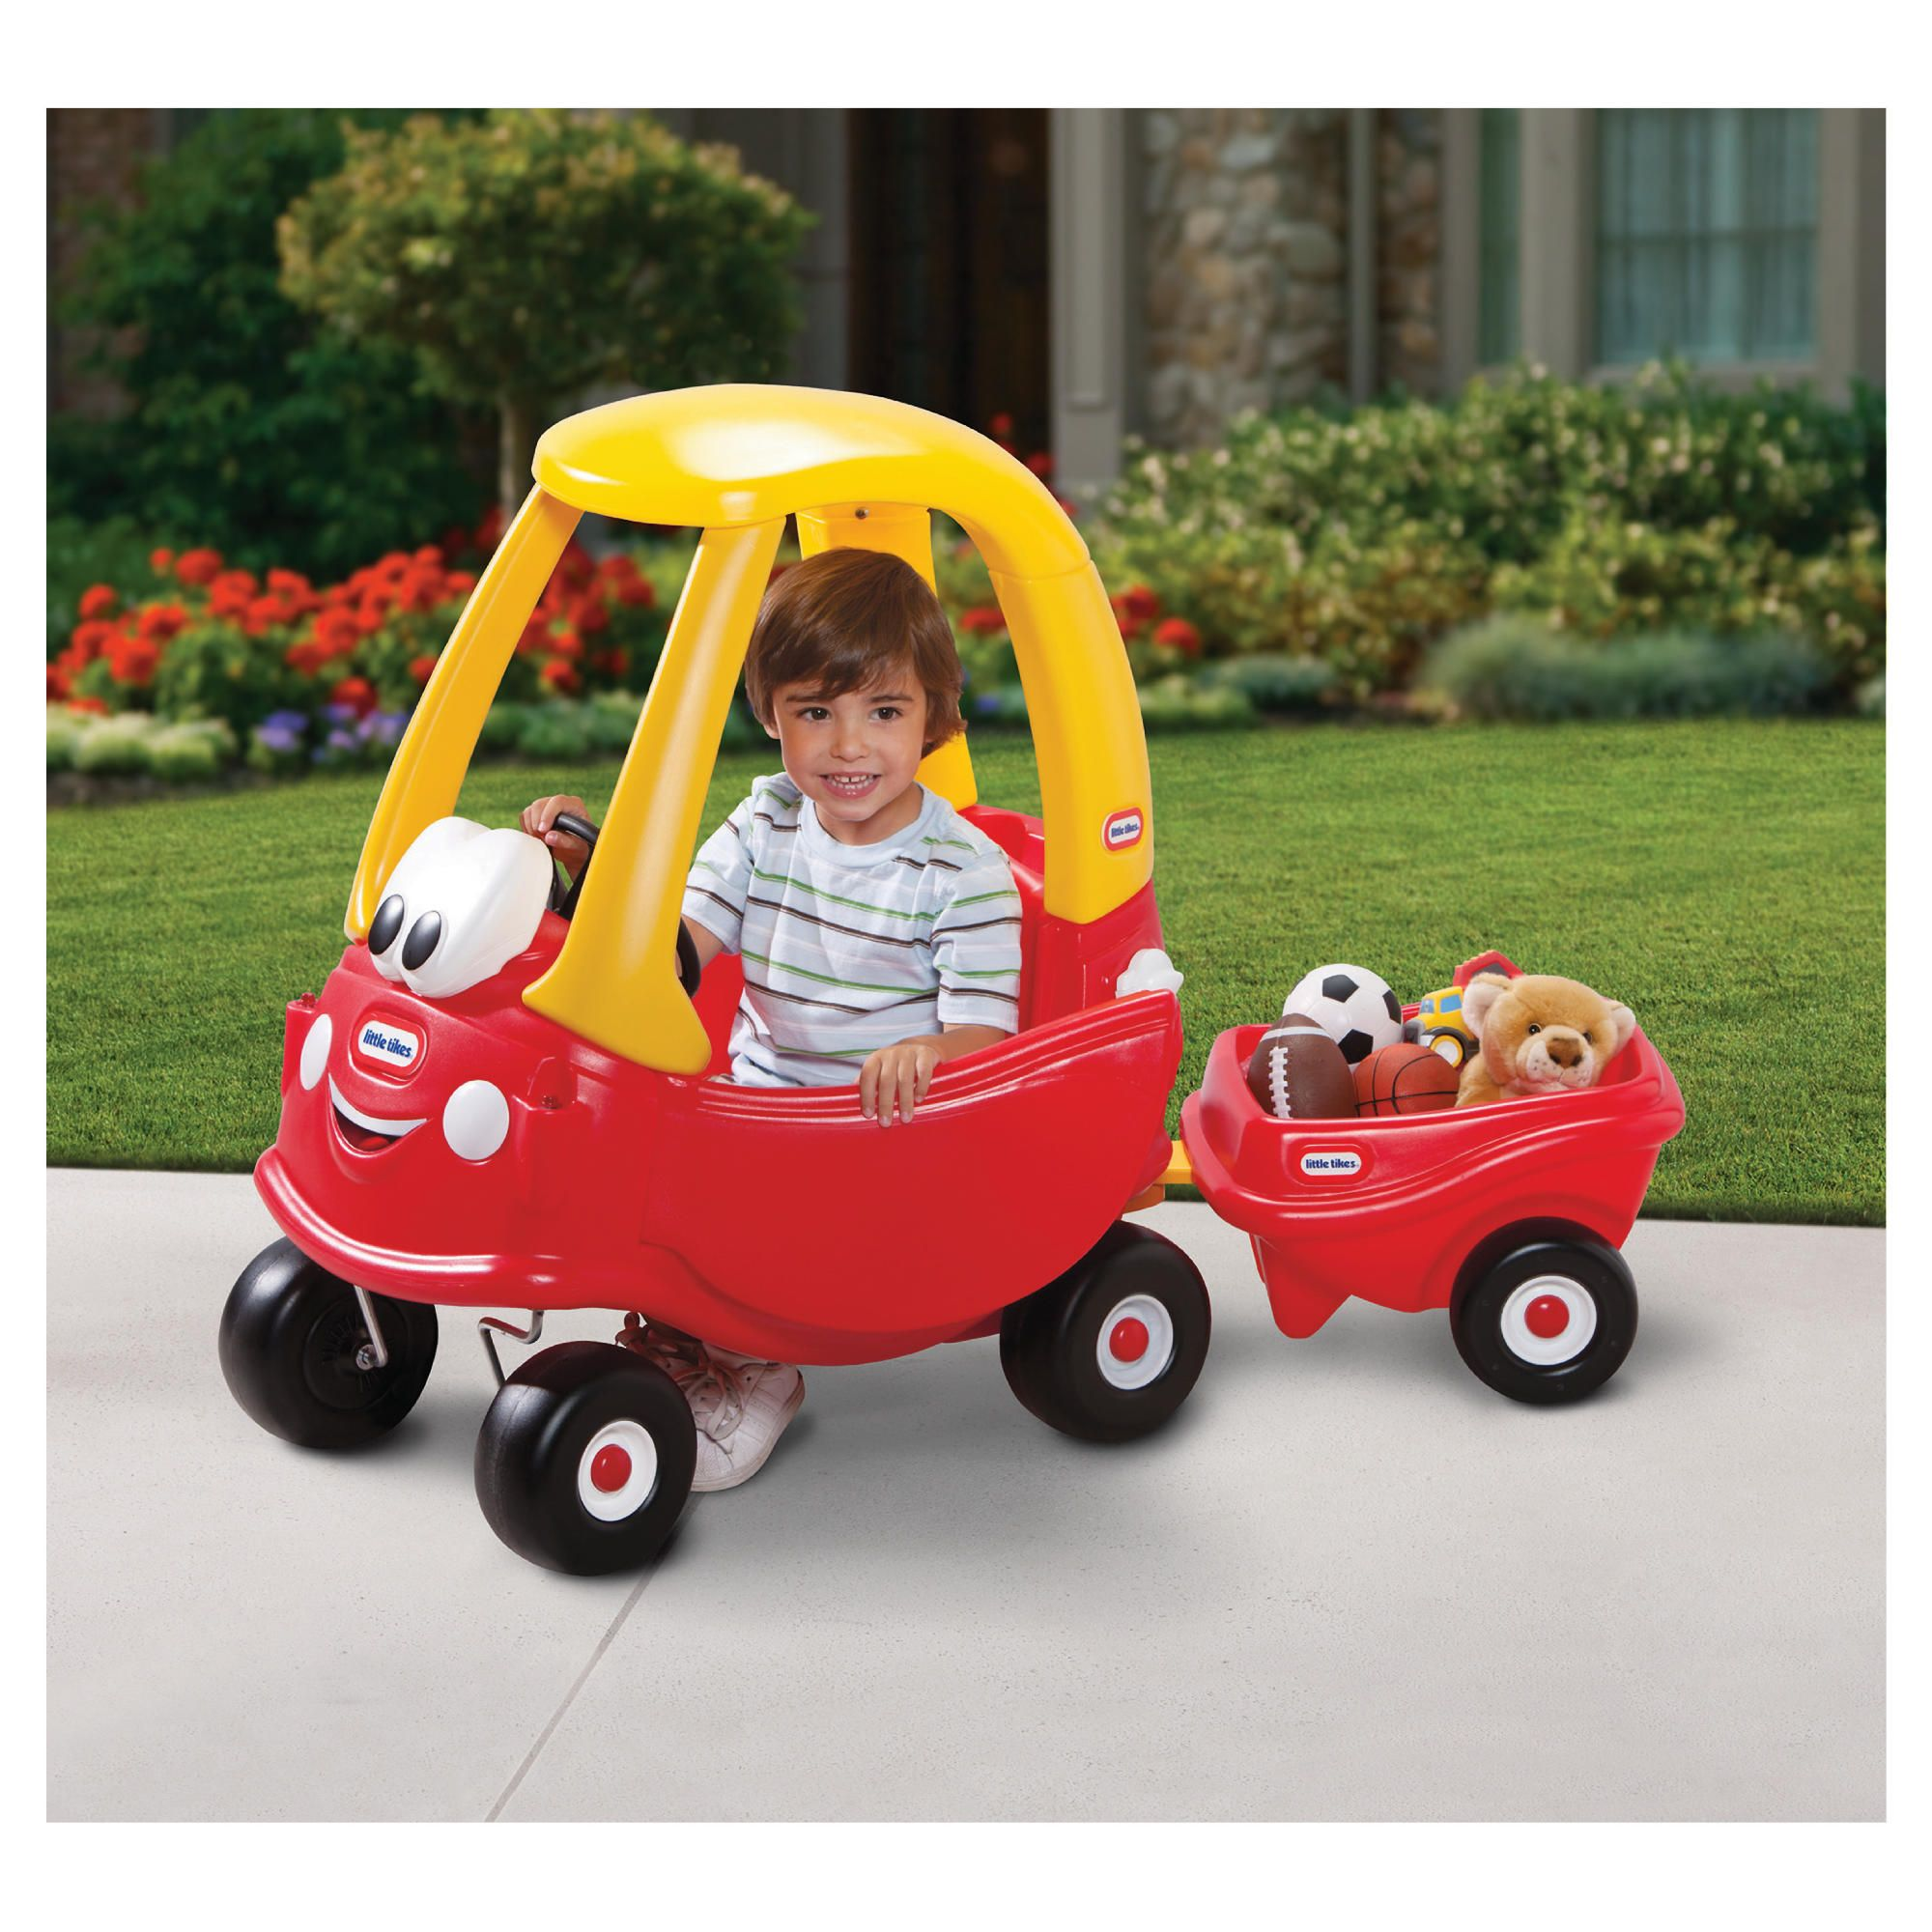 The Little Tikes Cozy Coupe is the bestselling vehicle since Toddlers love this riding toy 's classic design and easy maneuverability. Perfect indoors or out. The Cozy Coupe encourages active play, imagination, and the development of large motor lasourisglobe-trotteuse.tks: